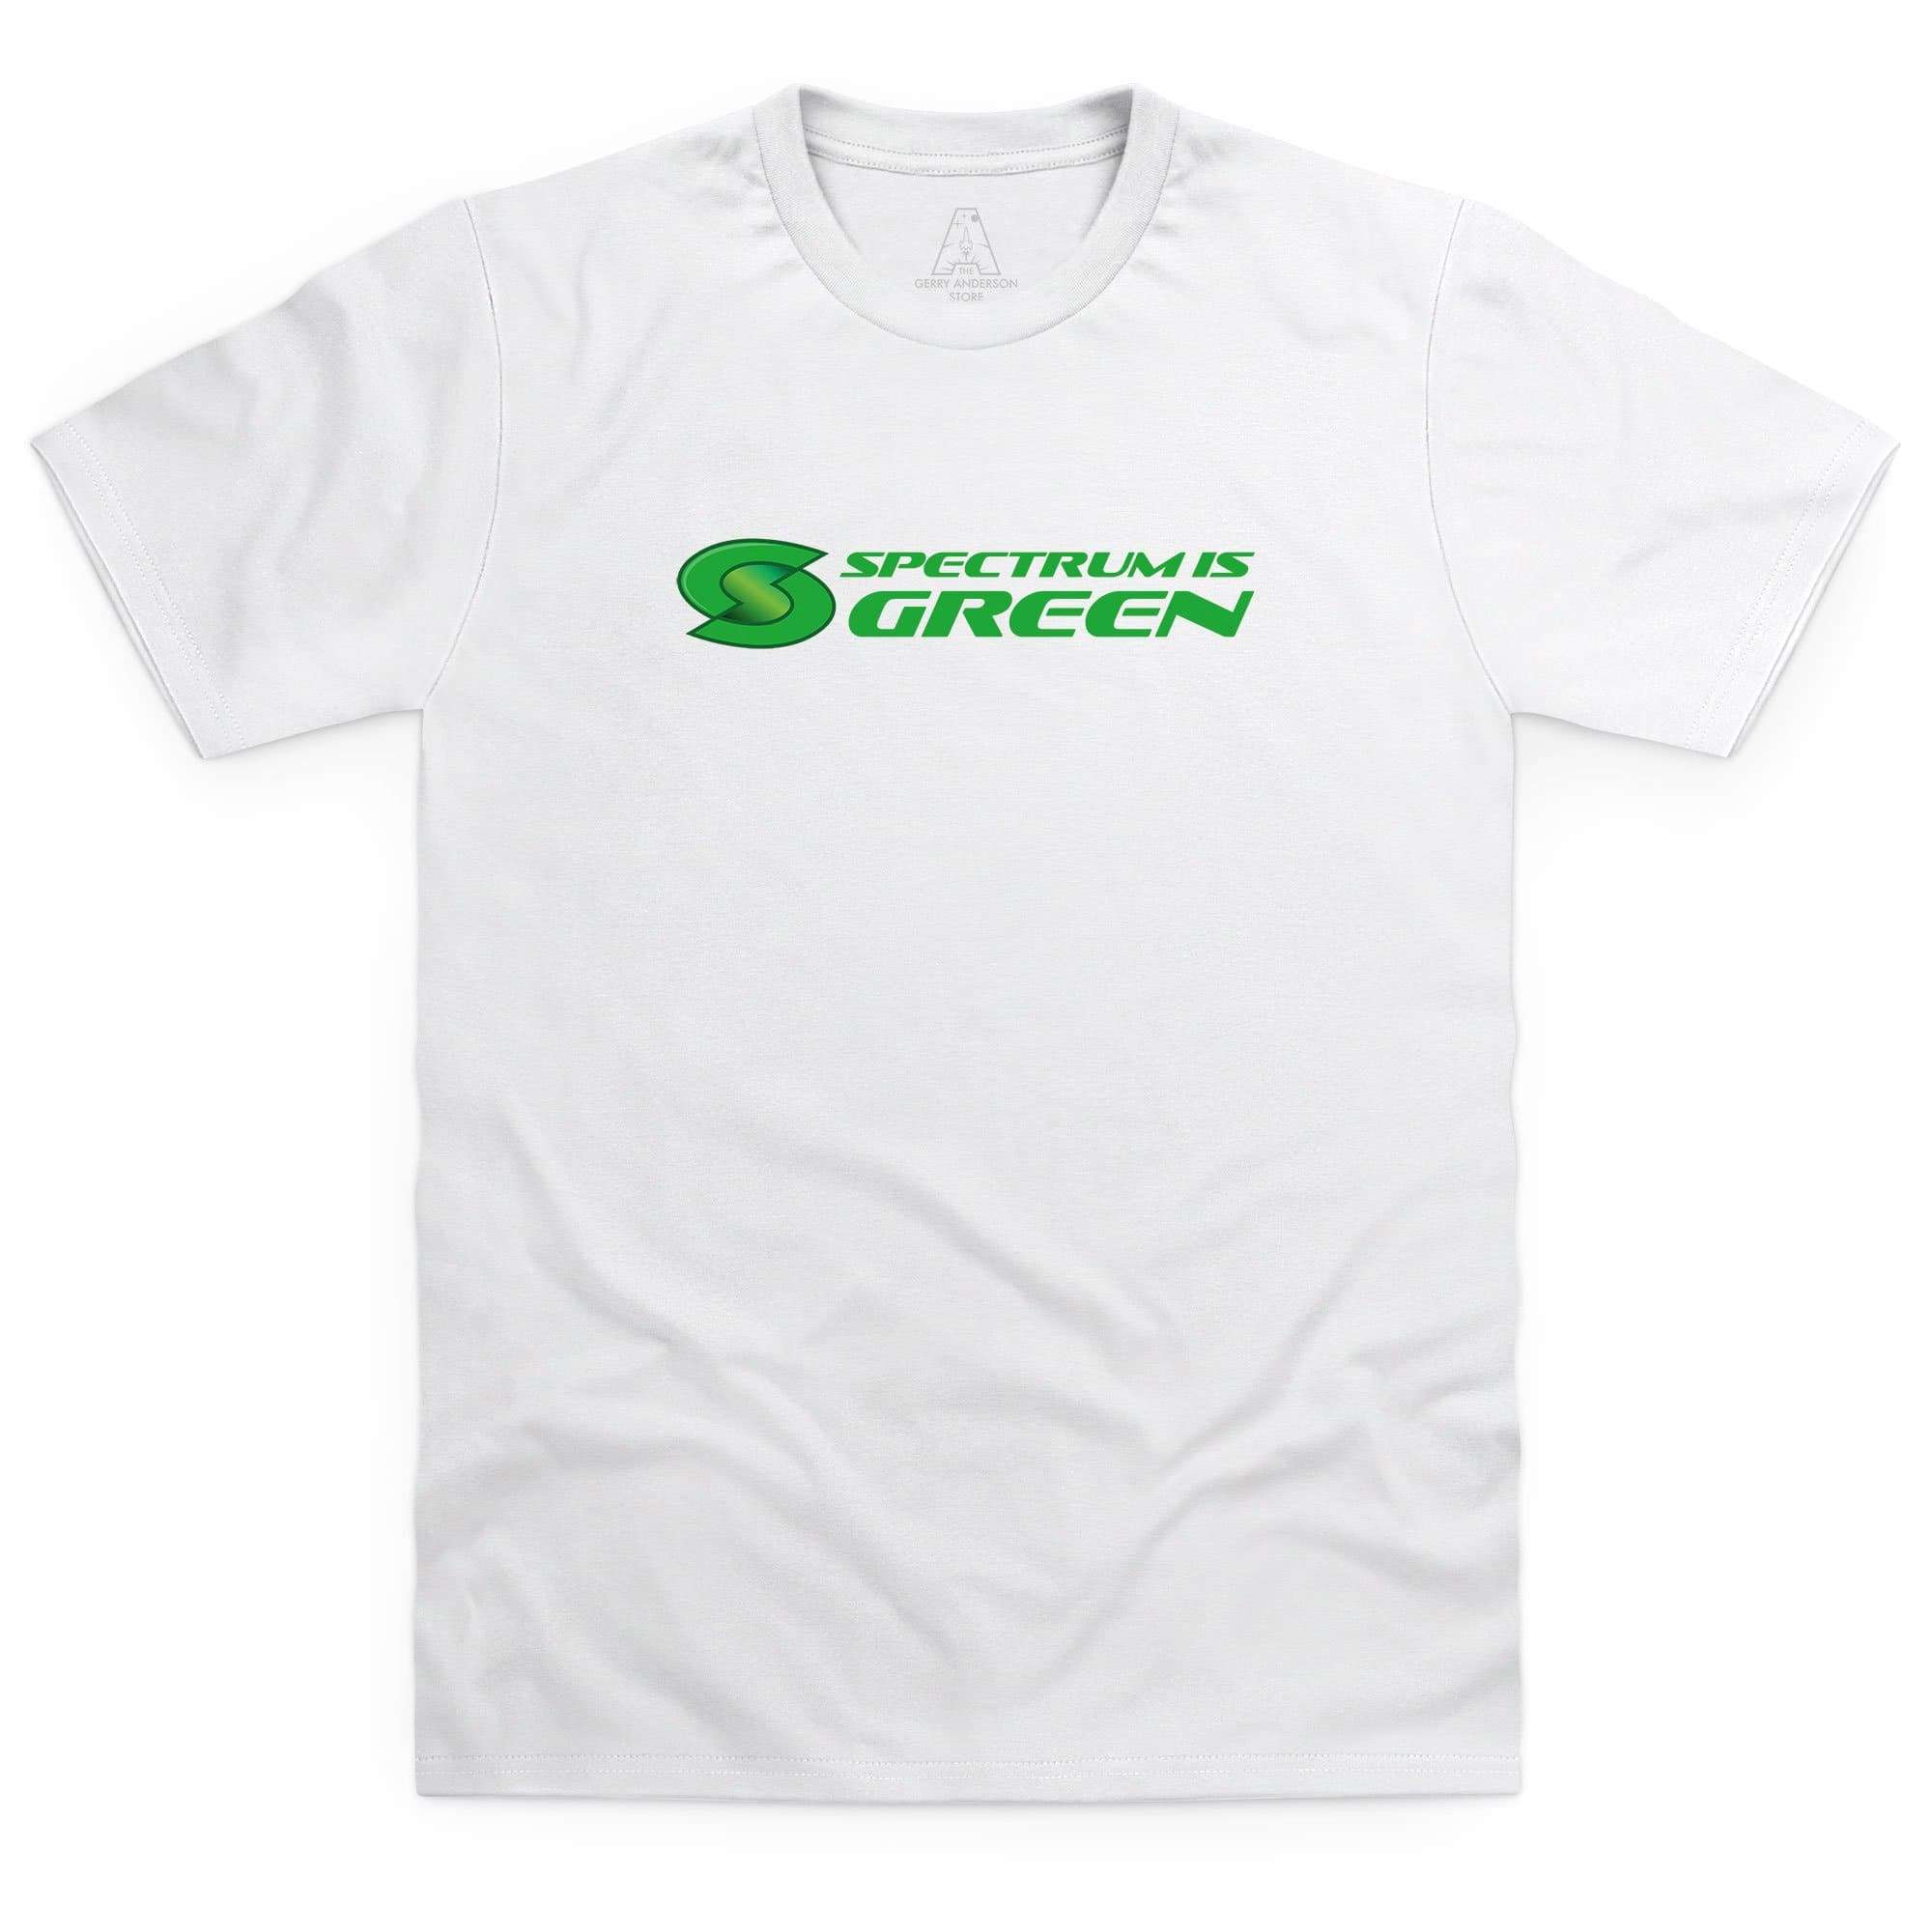 Spectrum Is Green Men's T-Shirt [Official & Exclusive] - The Gerry Anderson Store